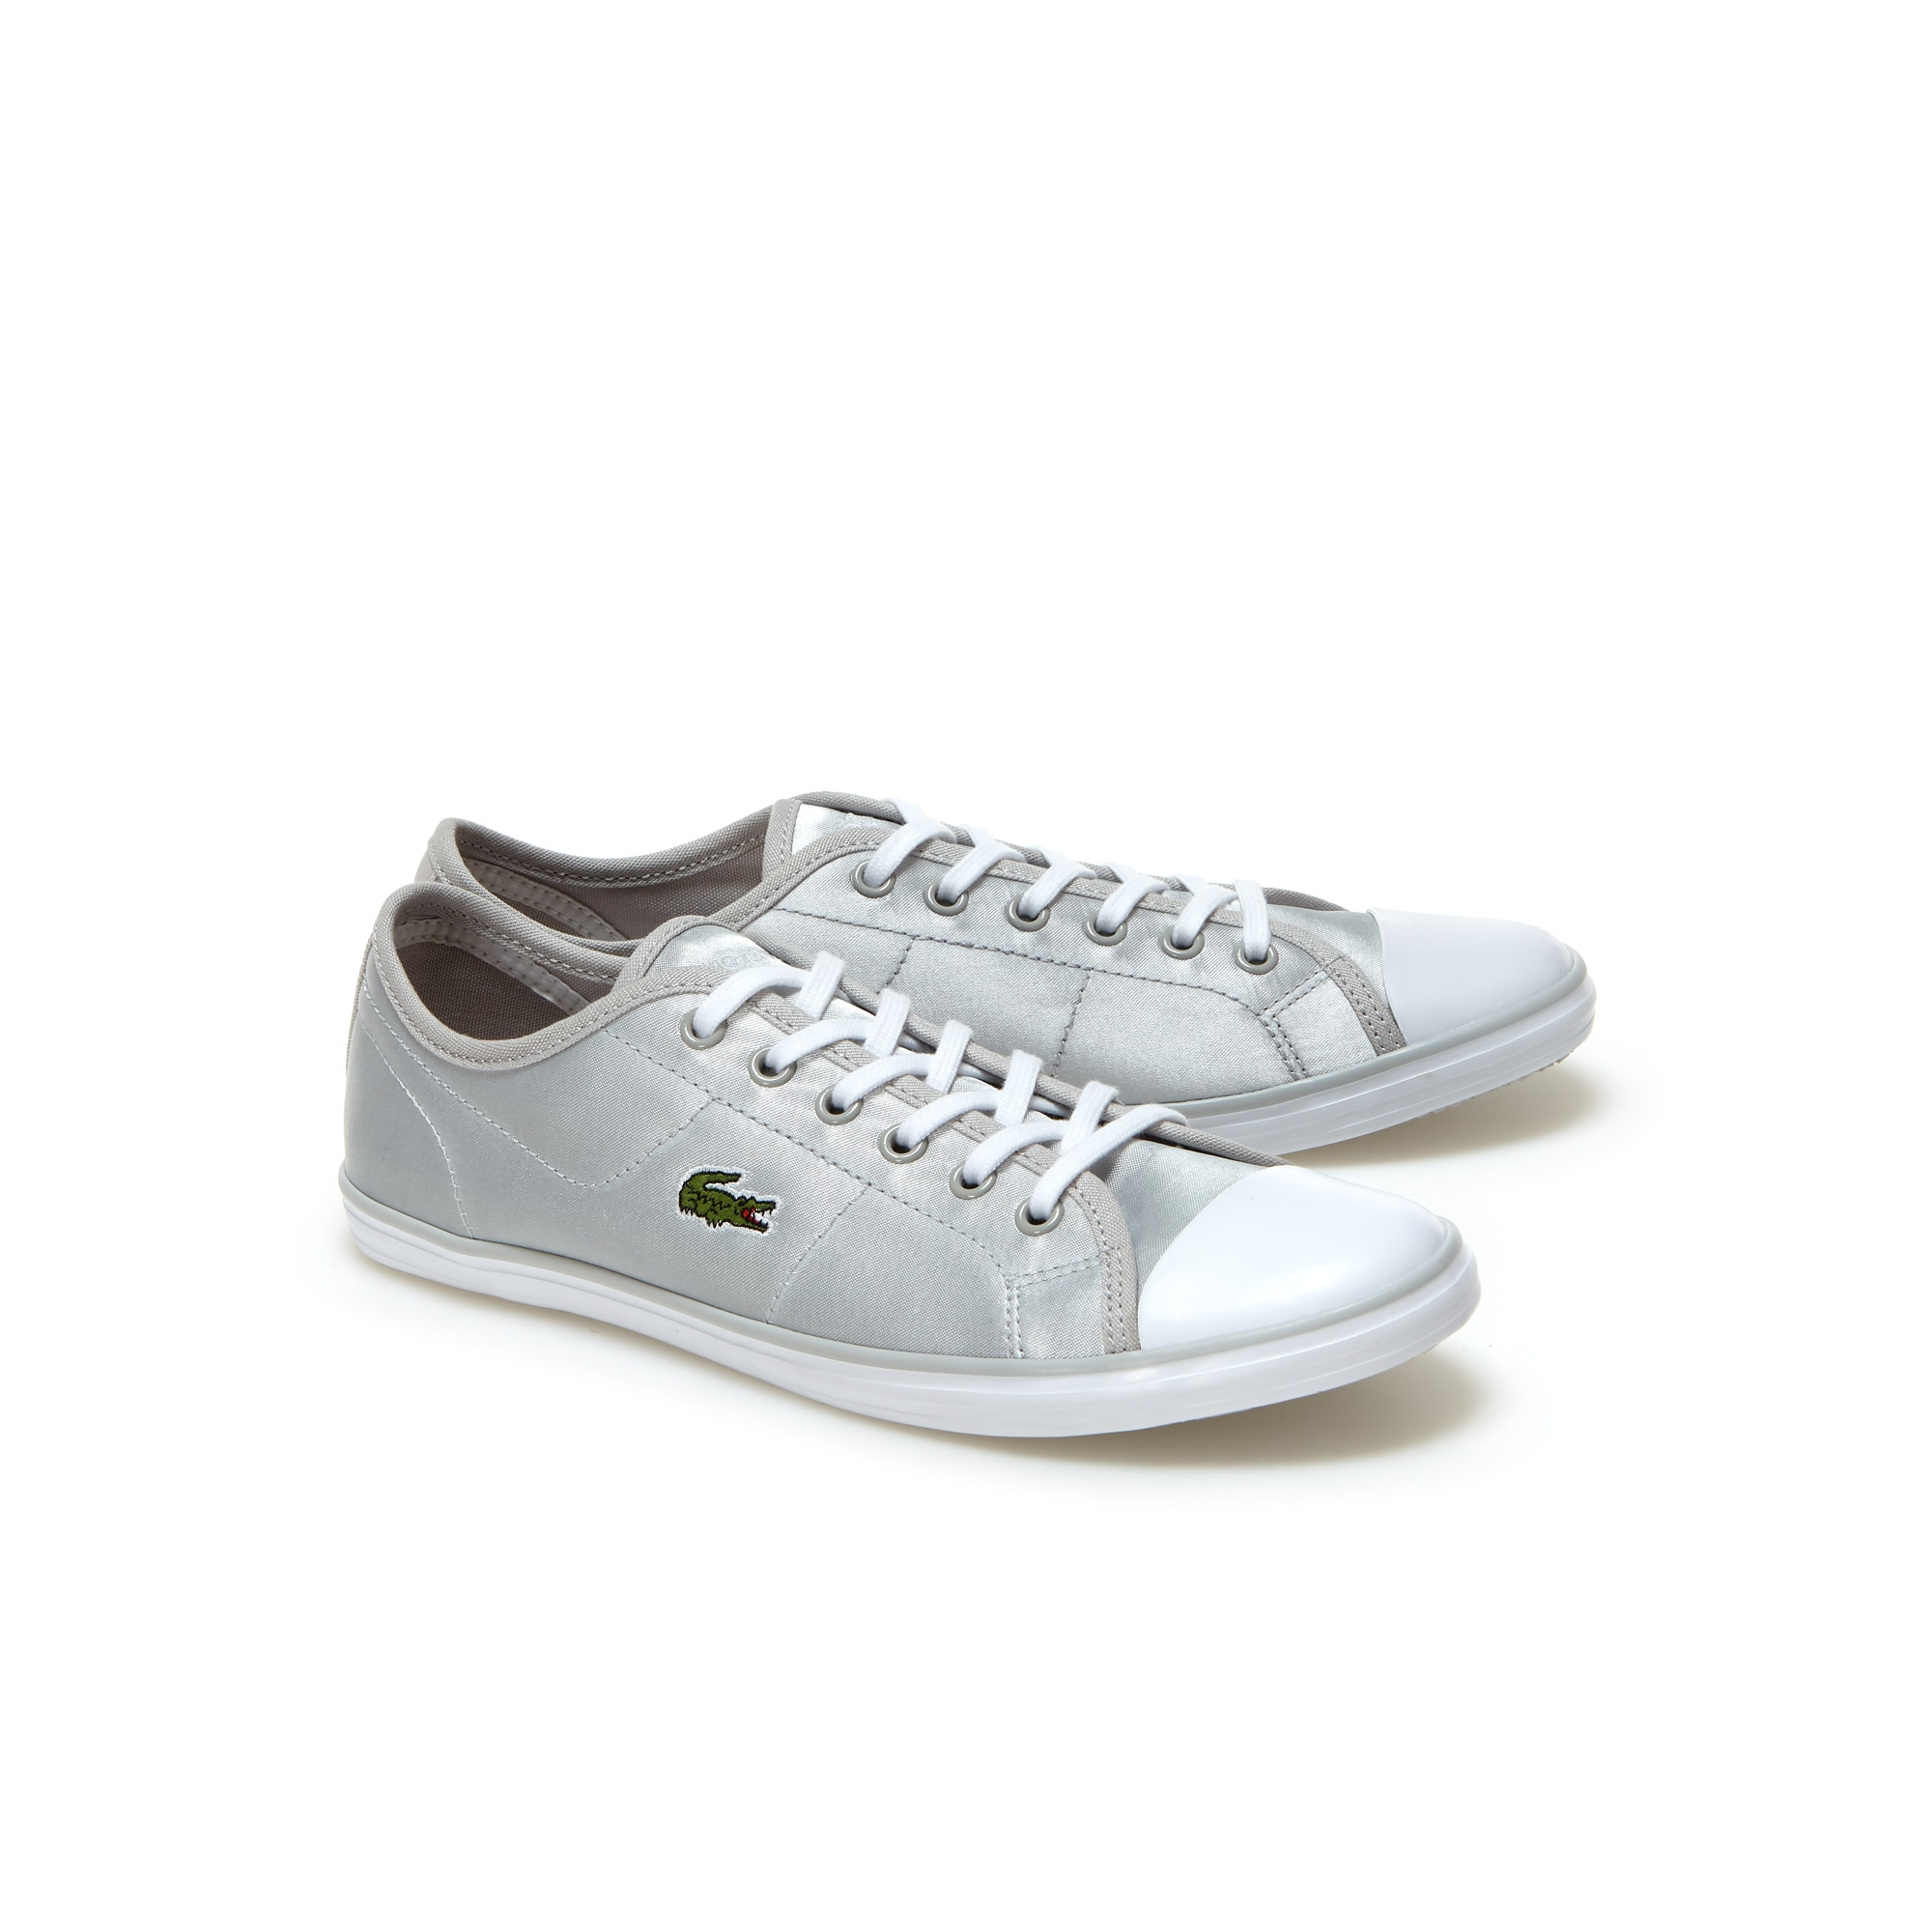 New Womens Lacoste Black Ziane Sneaker Textile Trainers Flats Lace Up